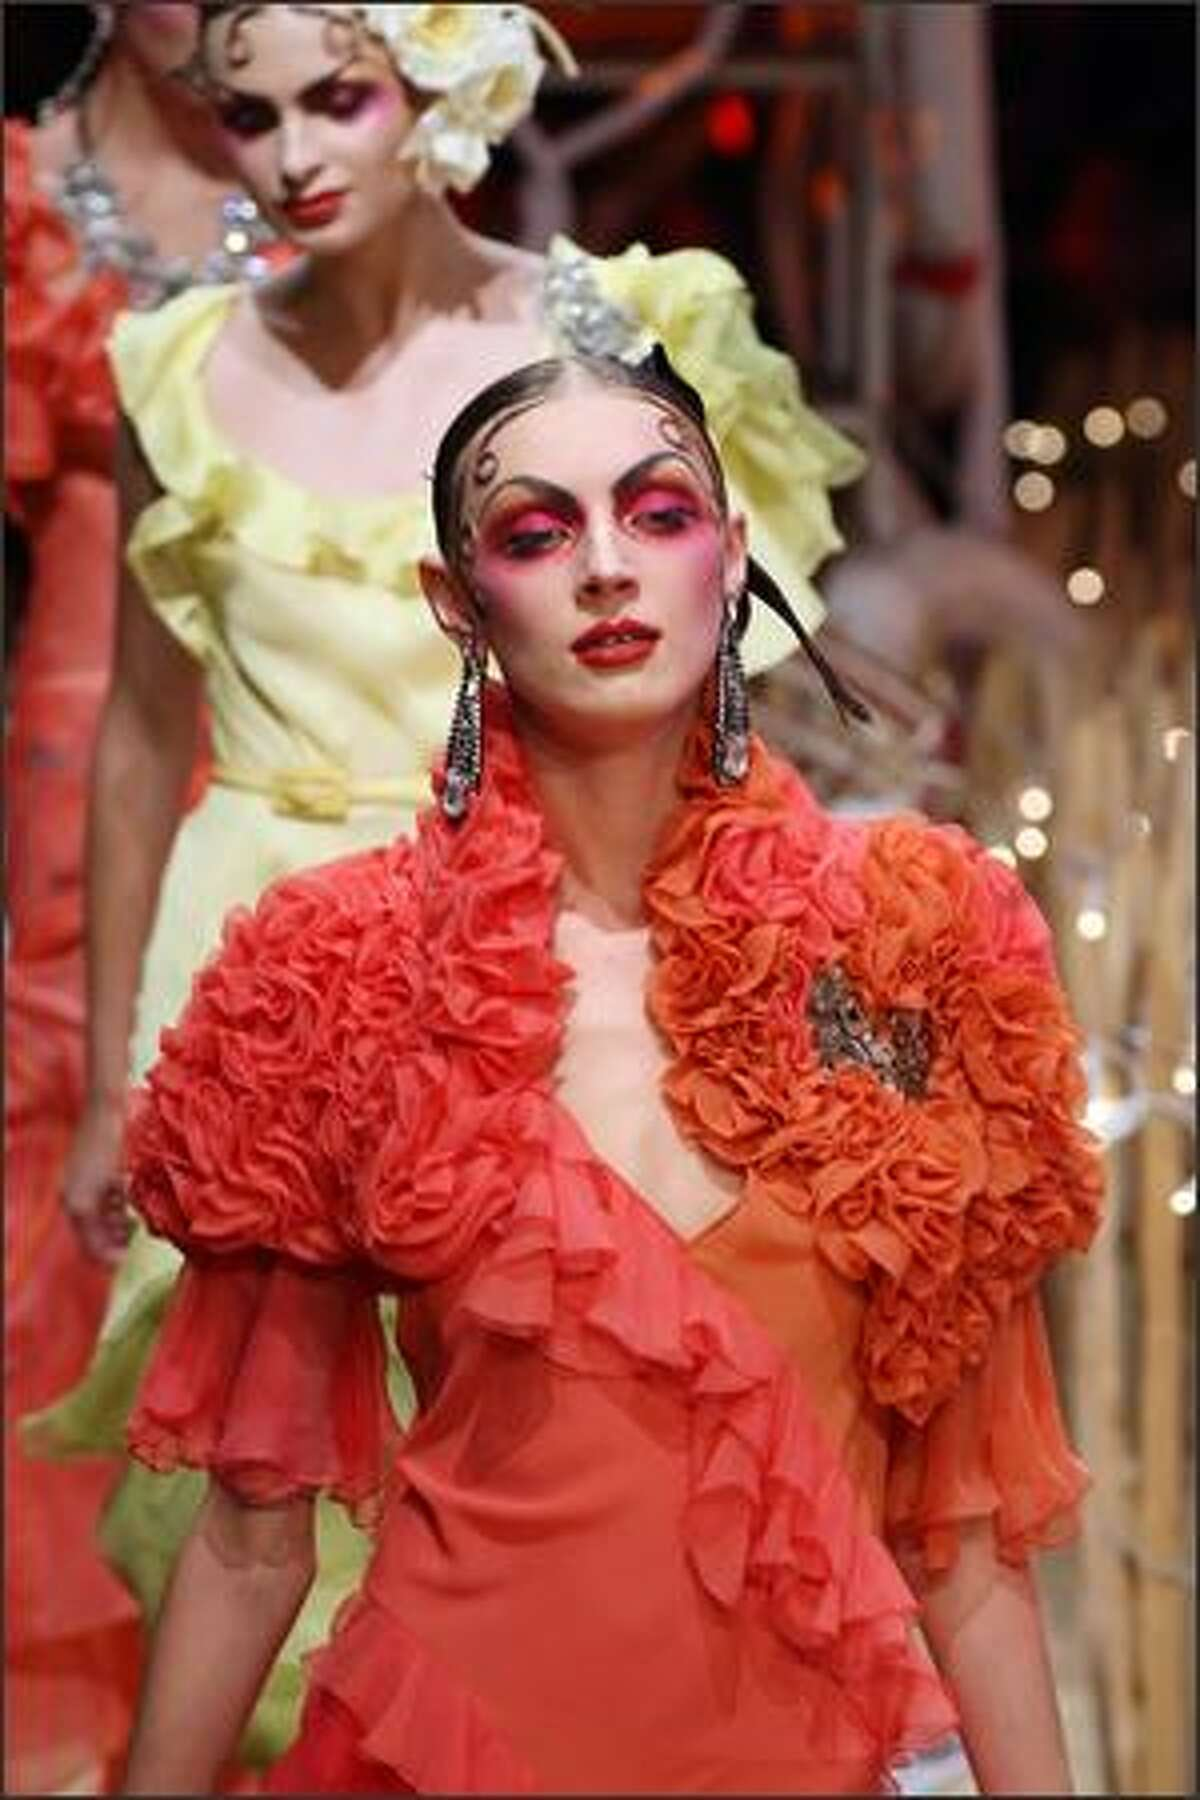 A model presents a creation by British designer John Galliano during Spring/Summer 2008 ready-to-wear collection show in Paris, 06 October 2007.